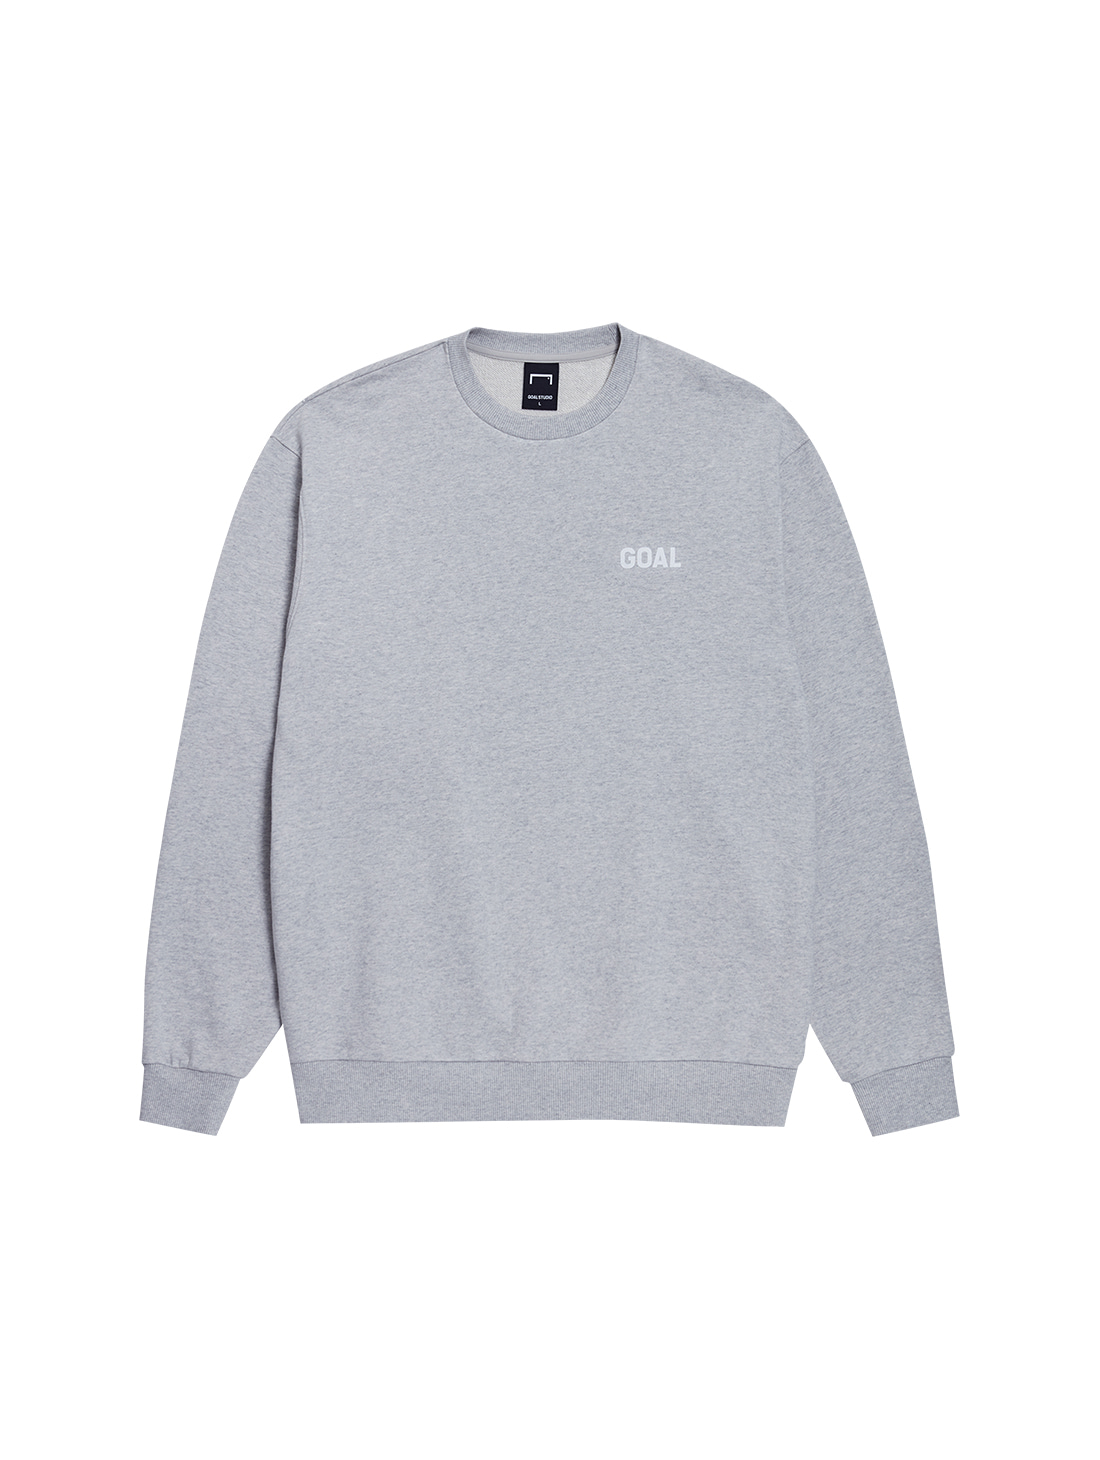 FLOCKING SWEATSHIRT - GREY